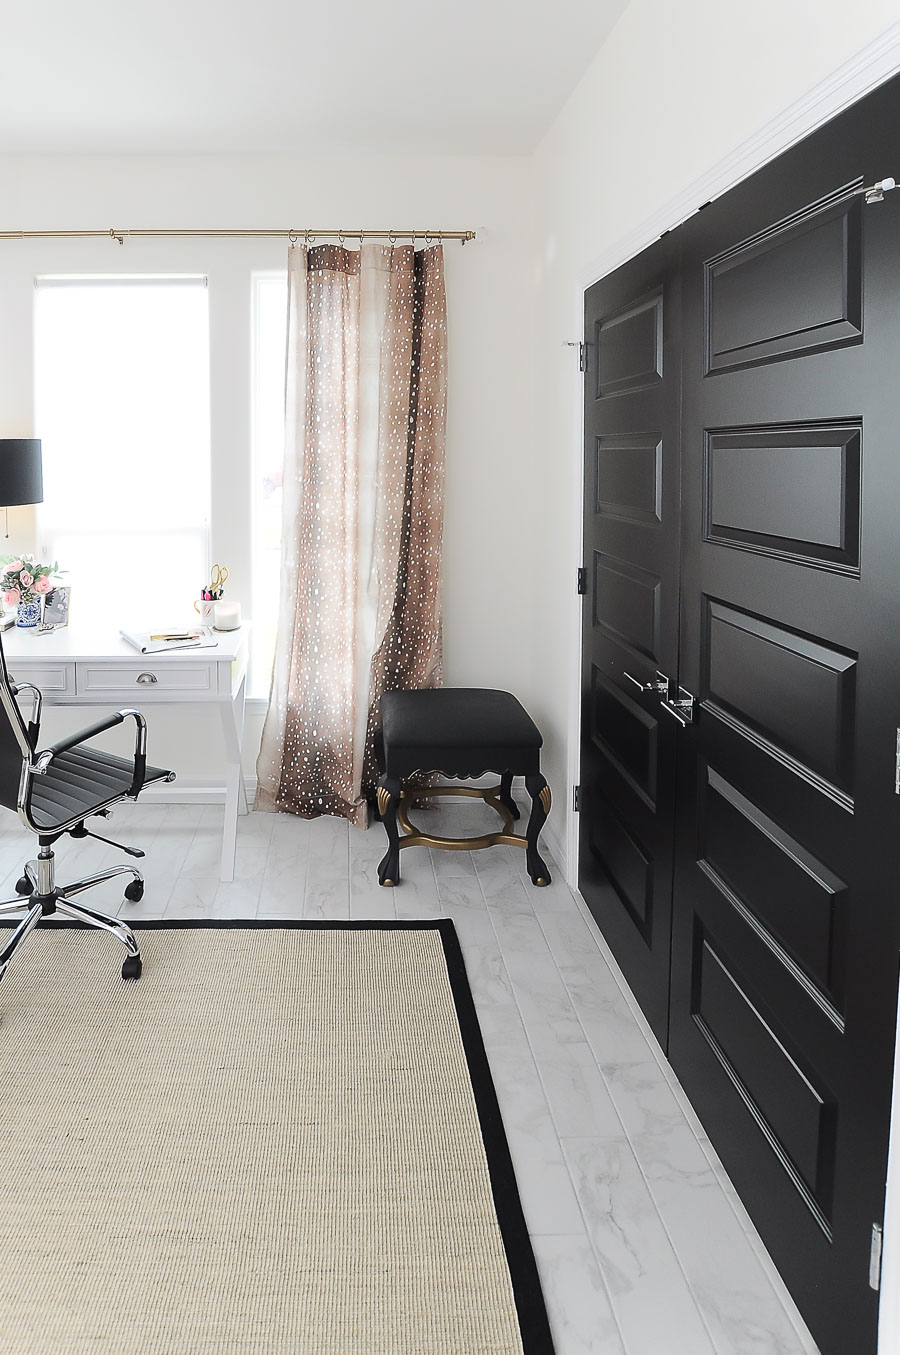 Black closet doors look chic when paired with antelope curtains in a white and gold home office makeover.